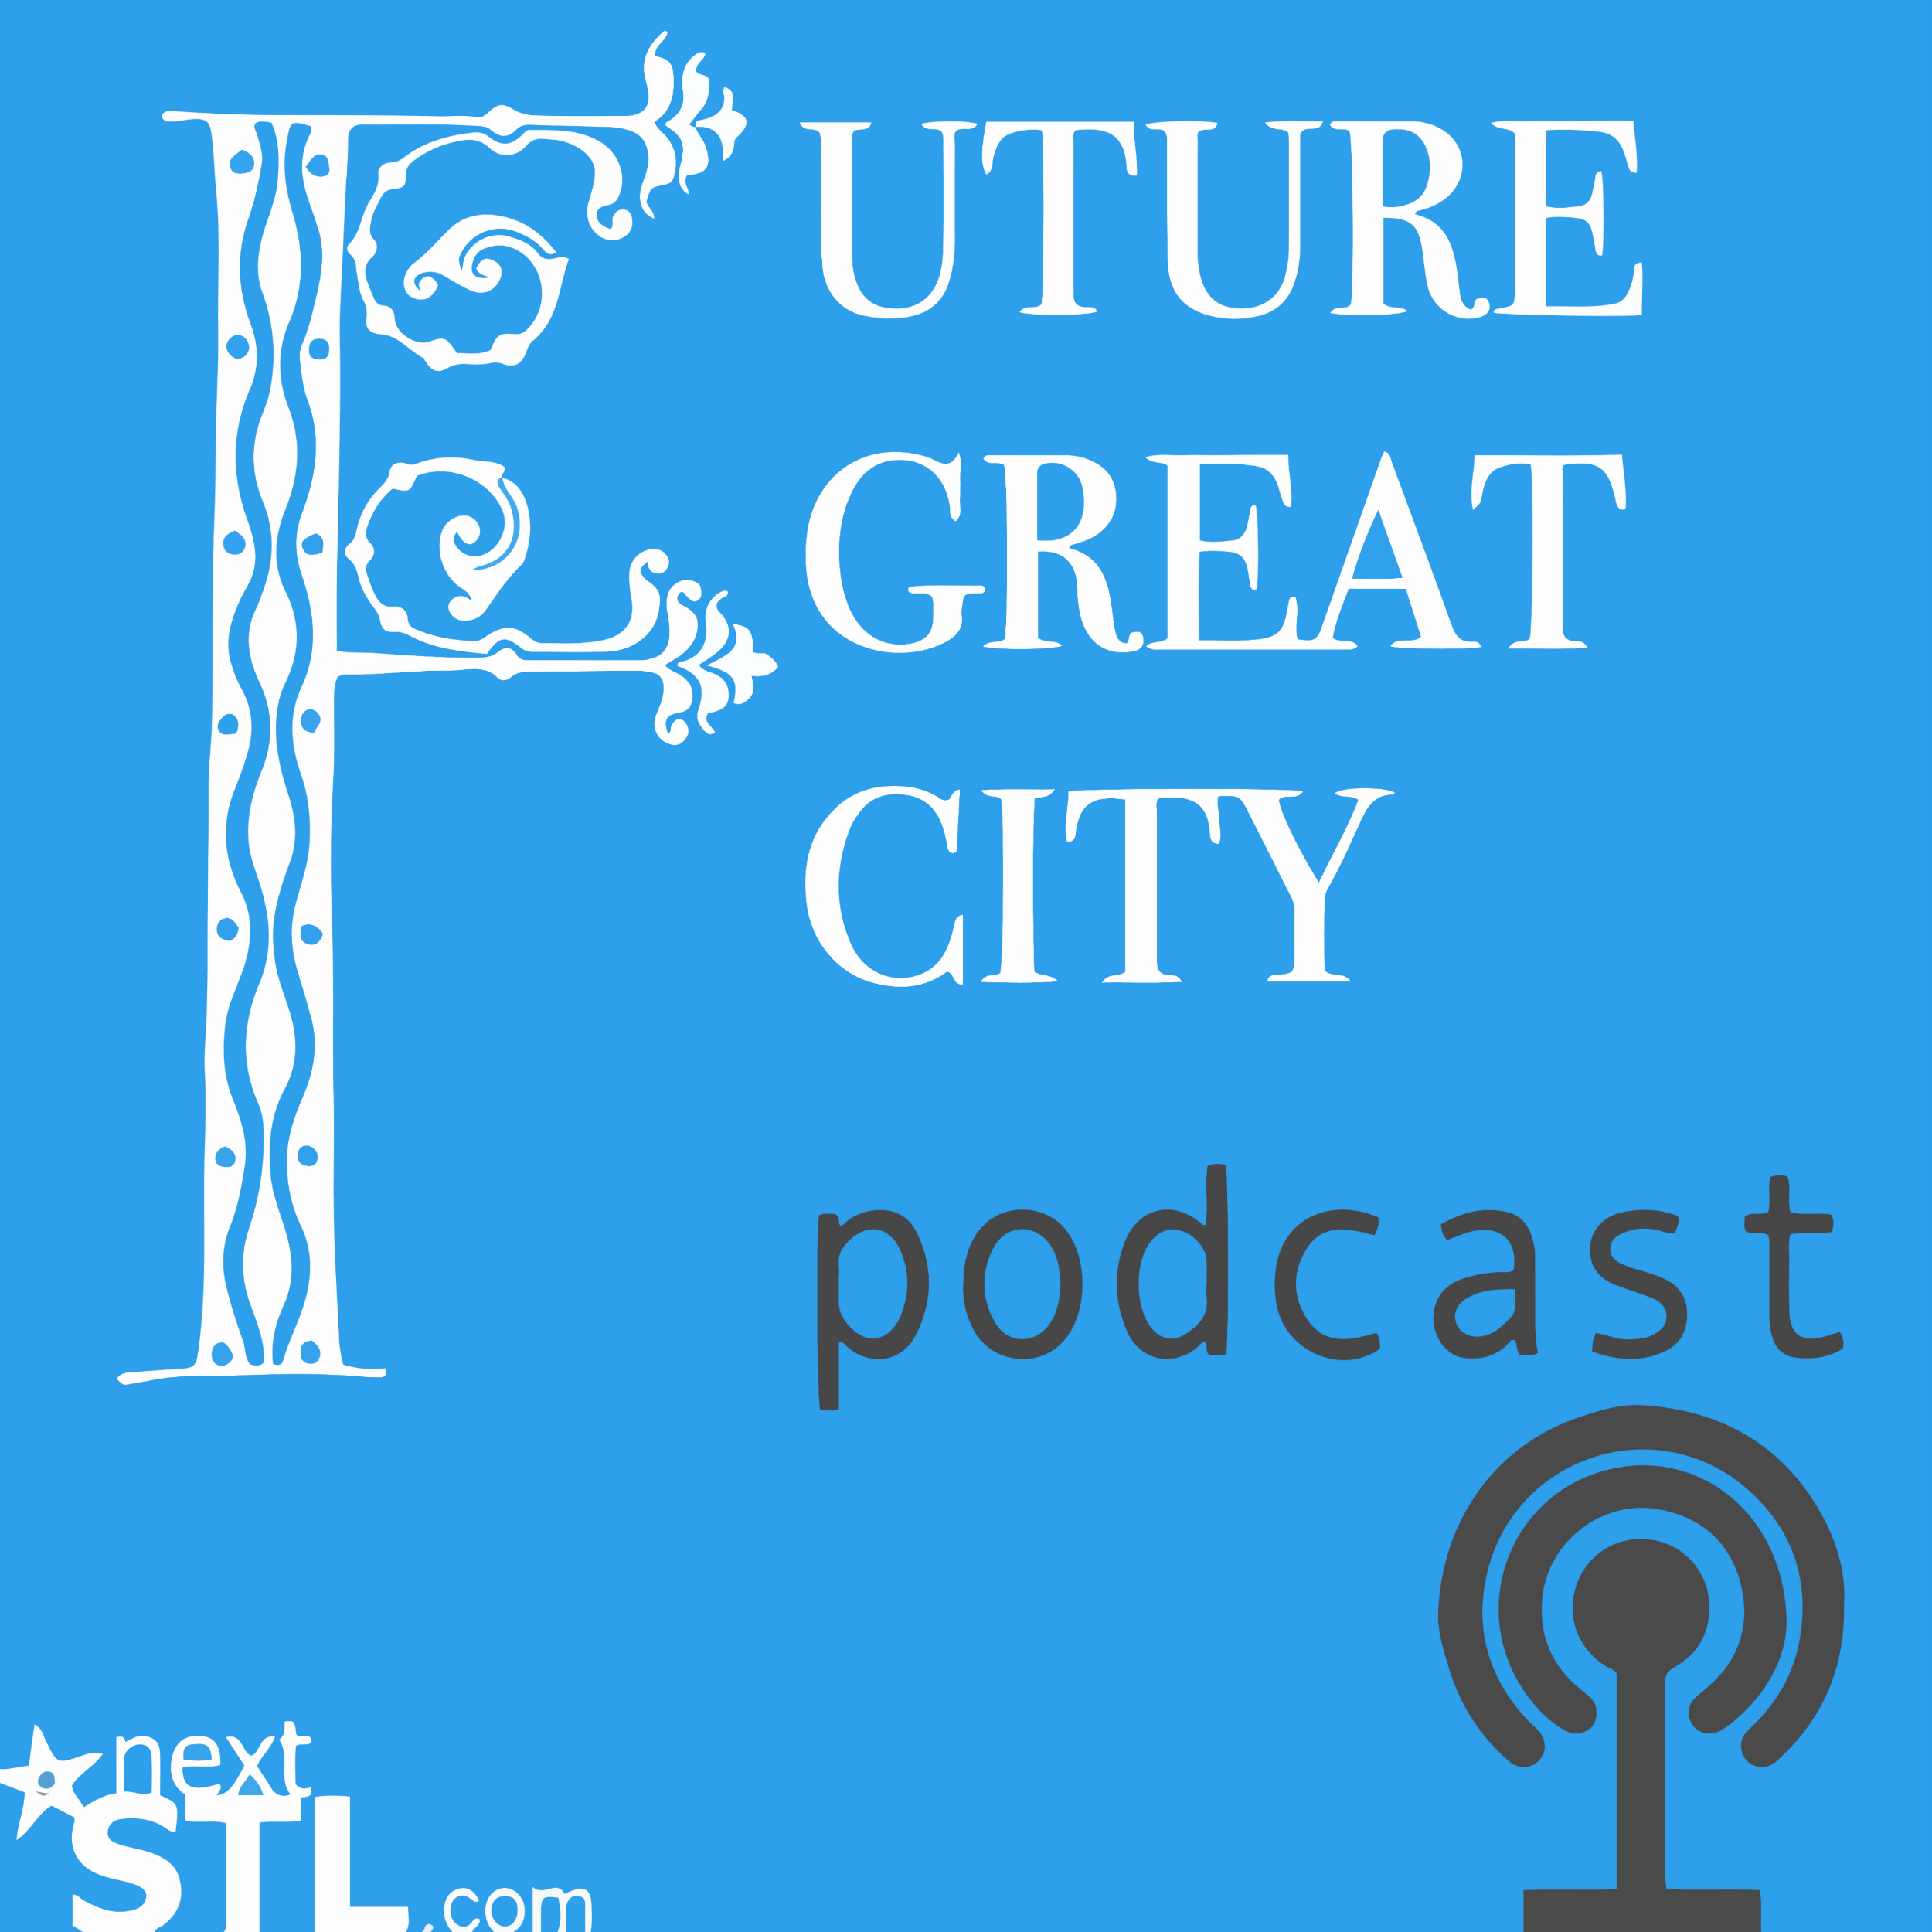 The Future Great City podcast by NextSTL